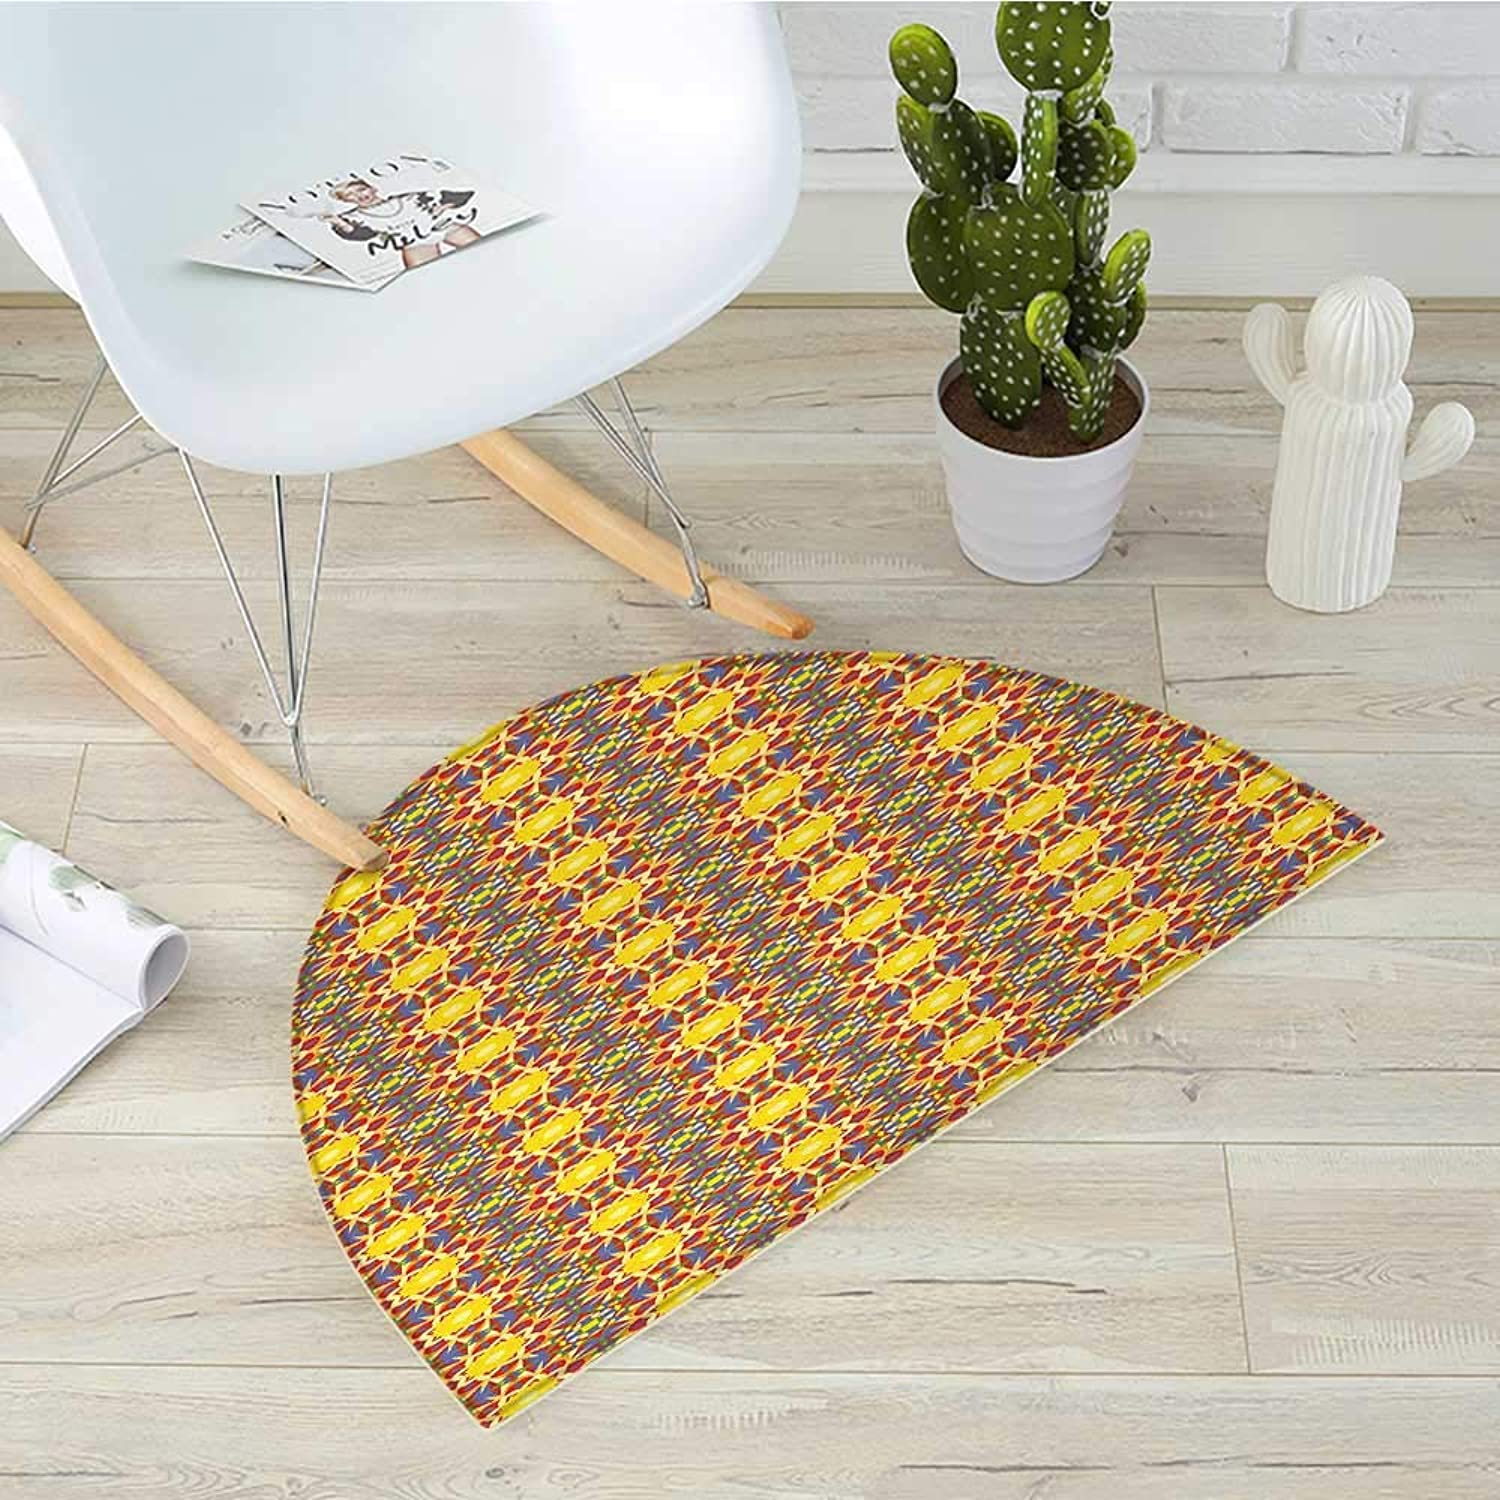 Geometric Semicircular CushionOriental Sun Inside a Flower Arabic Culture Inspired Motifs Leaves and Petals Entry Door Mat H 31.5  xD 47.2  Multicolor